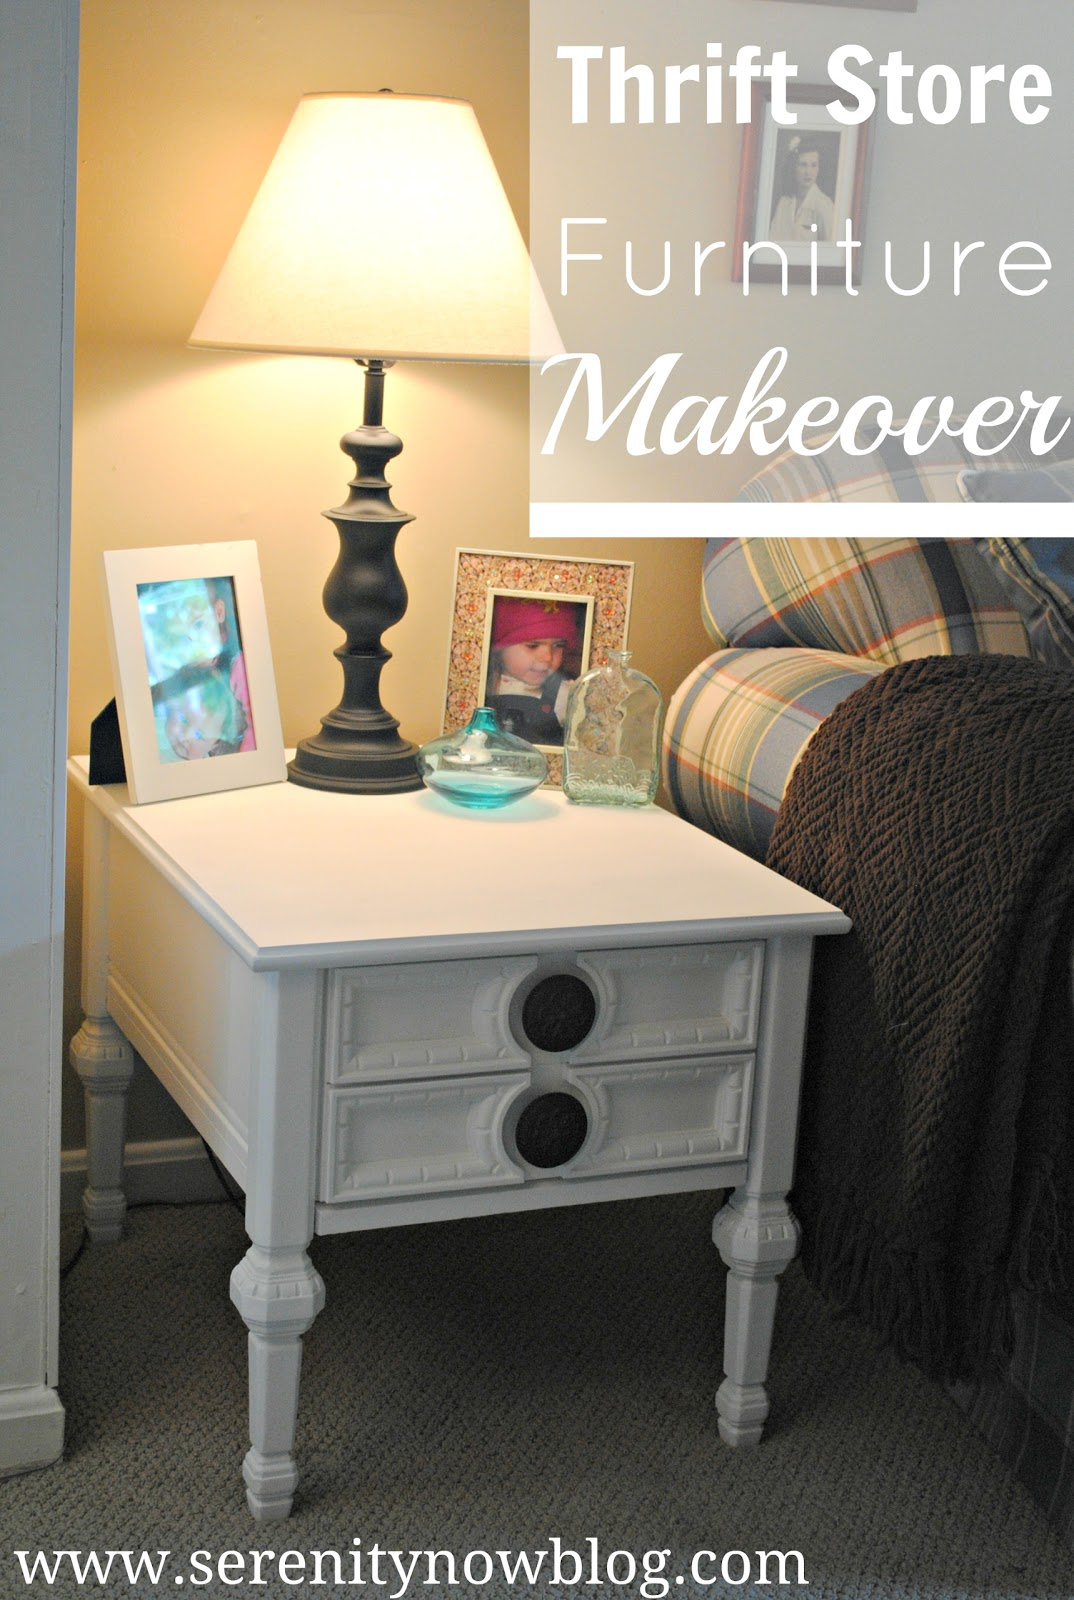 Thrift Store Couches Serenity Now Thrift Store Furniture Makeover End Tables